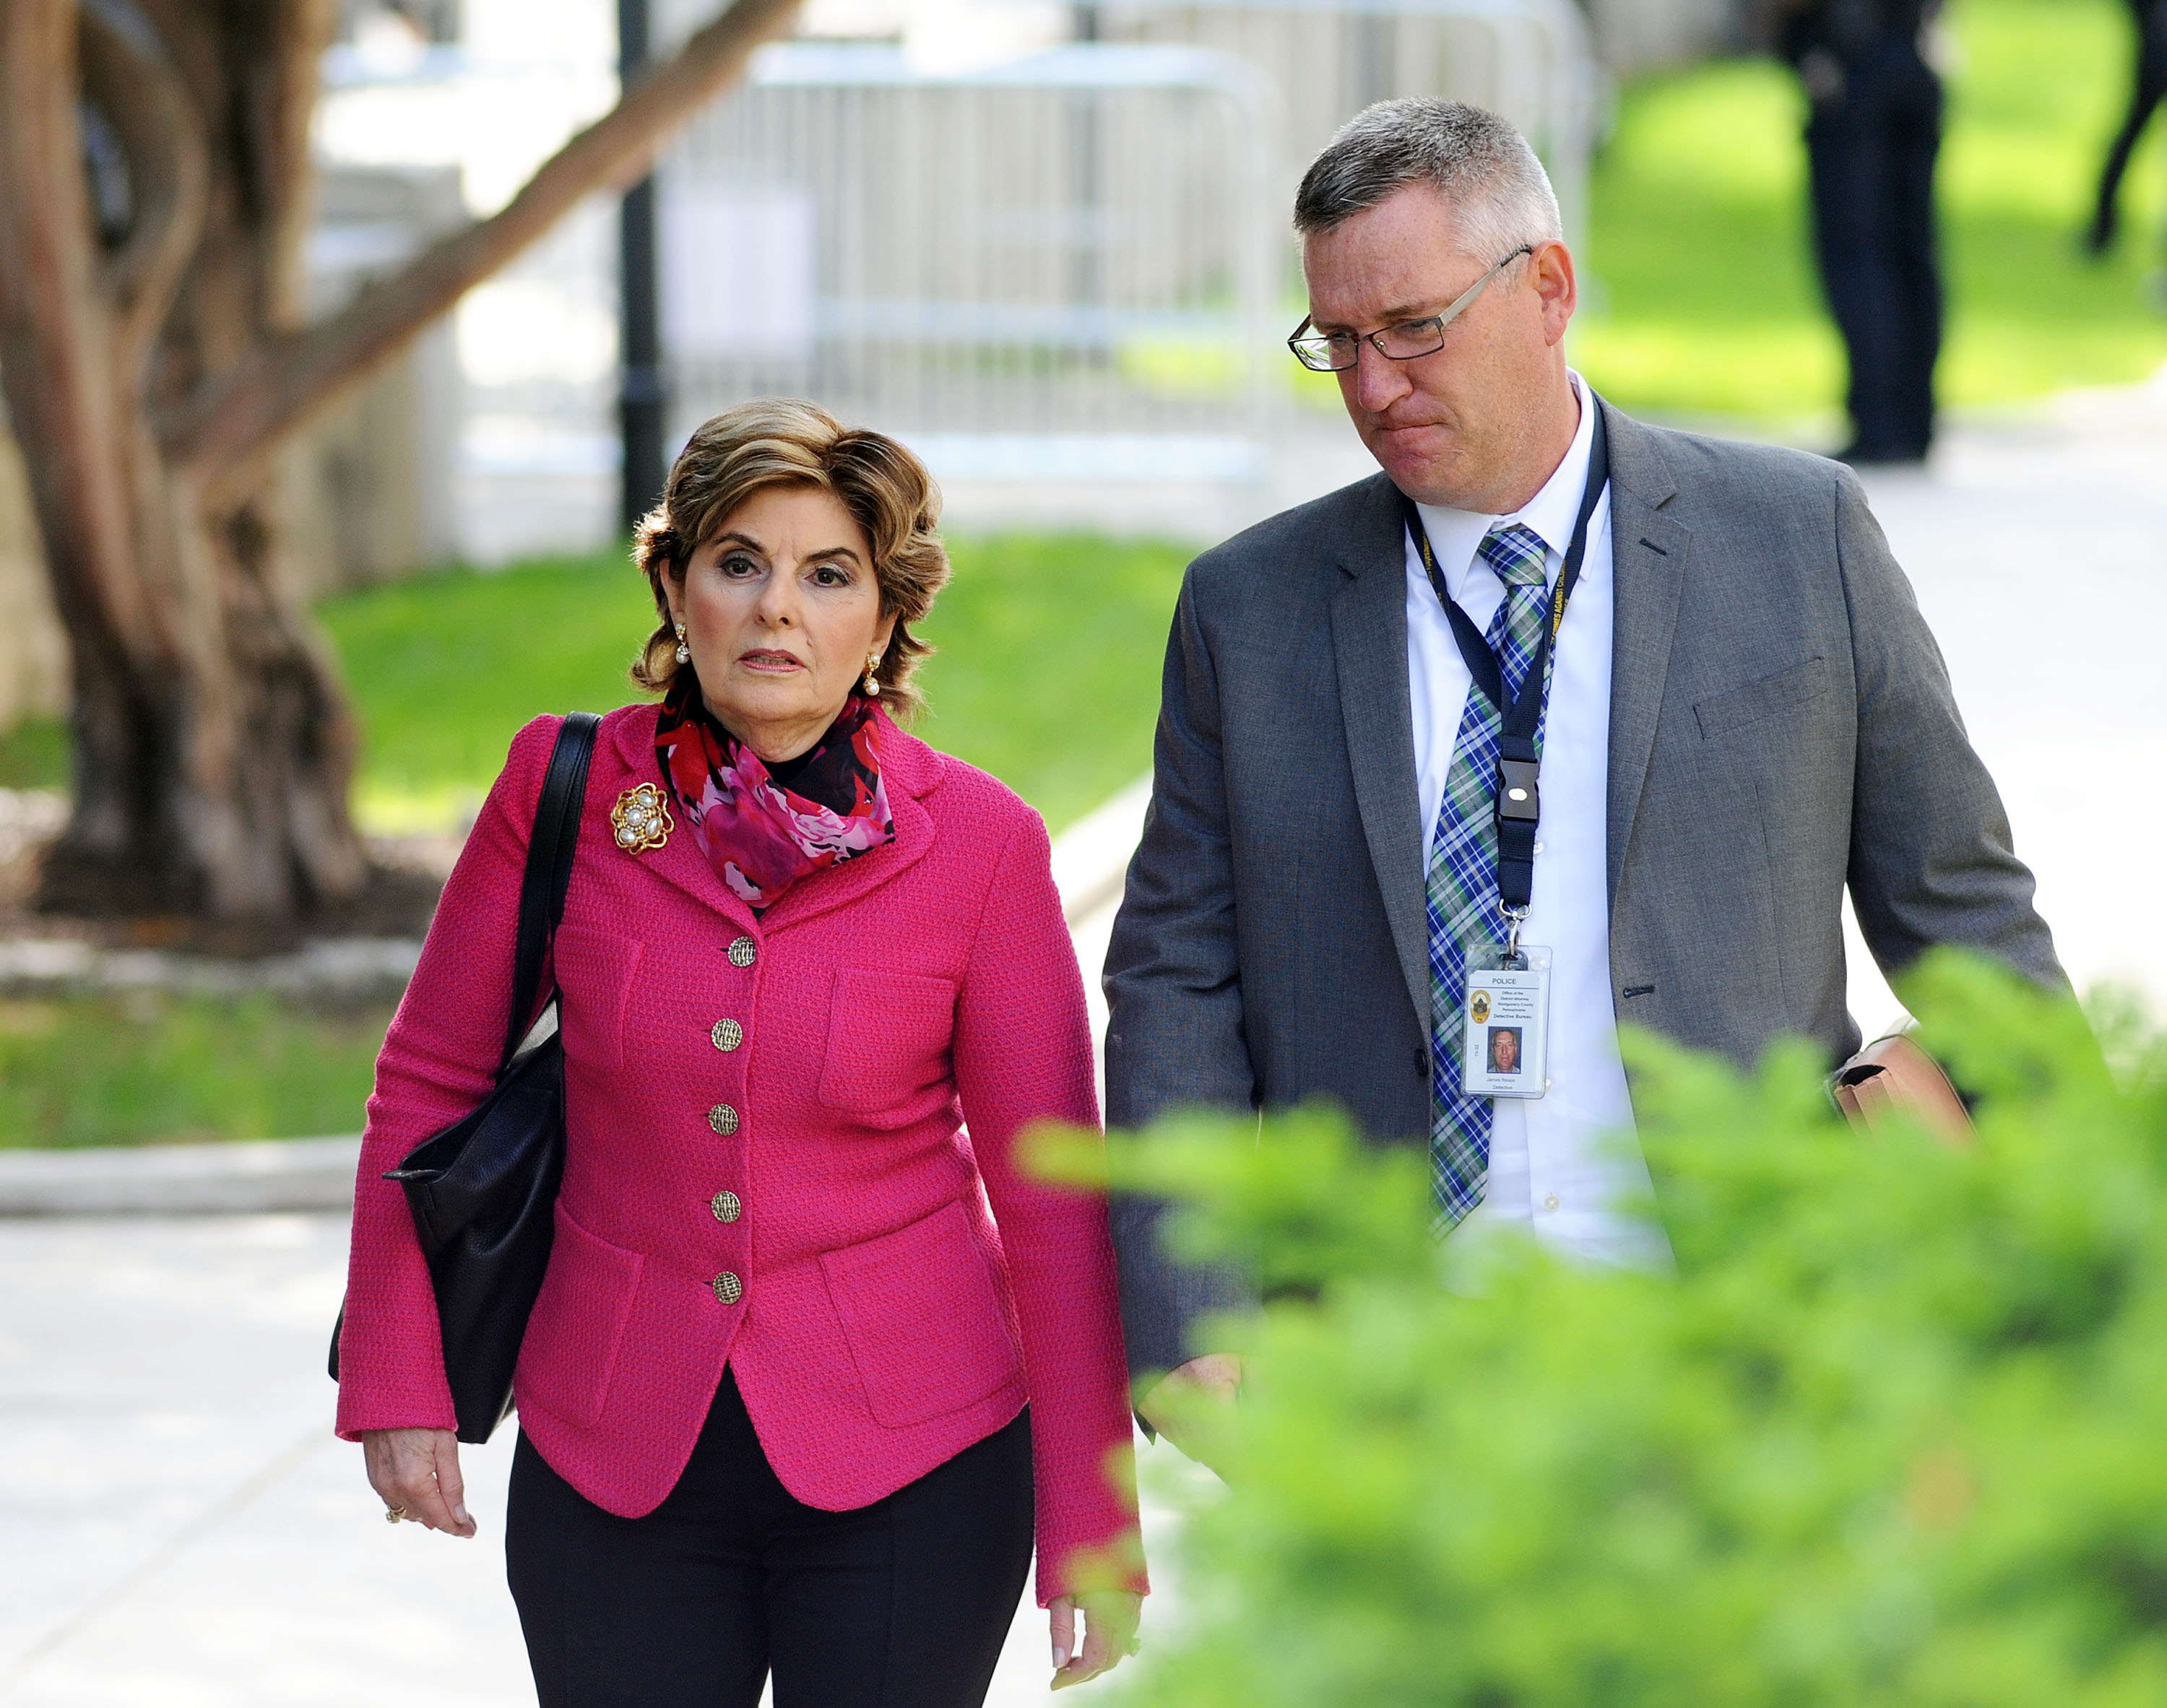 Gloria Allred, an attorney for some of the victims in the Bill Cosby sexual abuse case, arrives for a preliminary hearing on sexual assault charges at Montgomery County Courthouse on May 24, 2016 in Norristown, Pennsylvania. (William Thomas Cain/Getty)